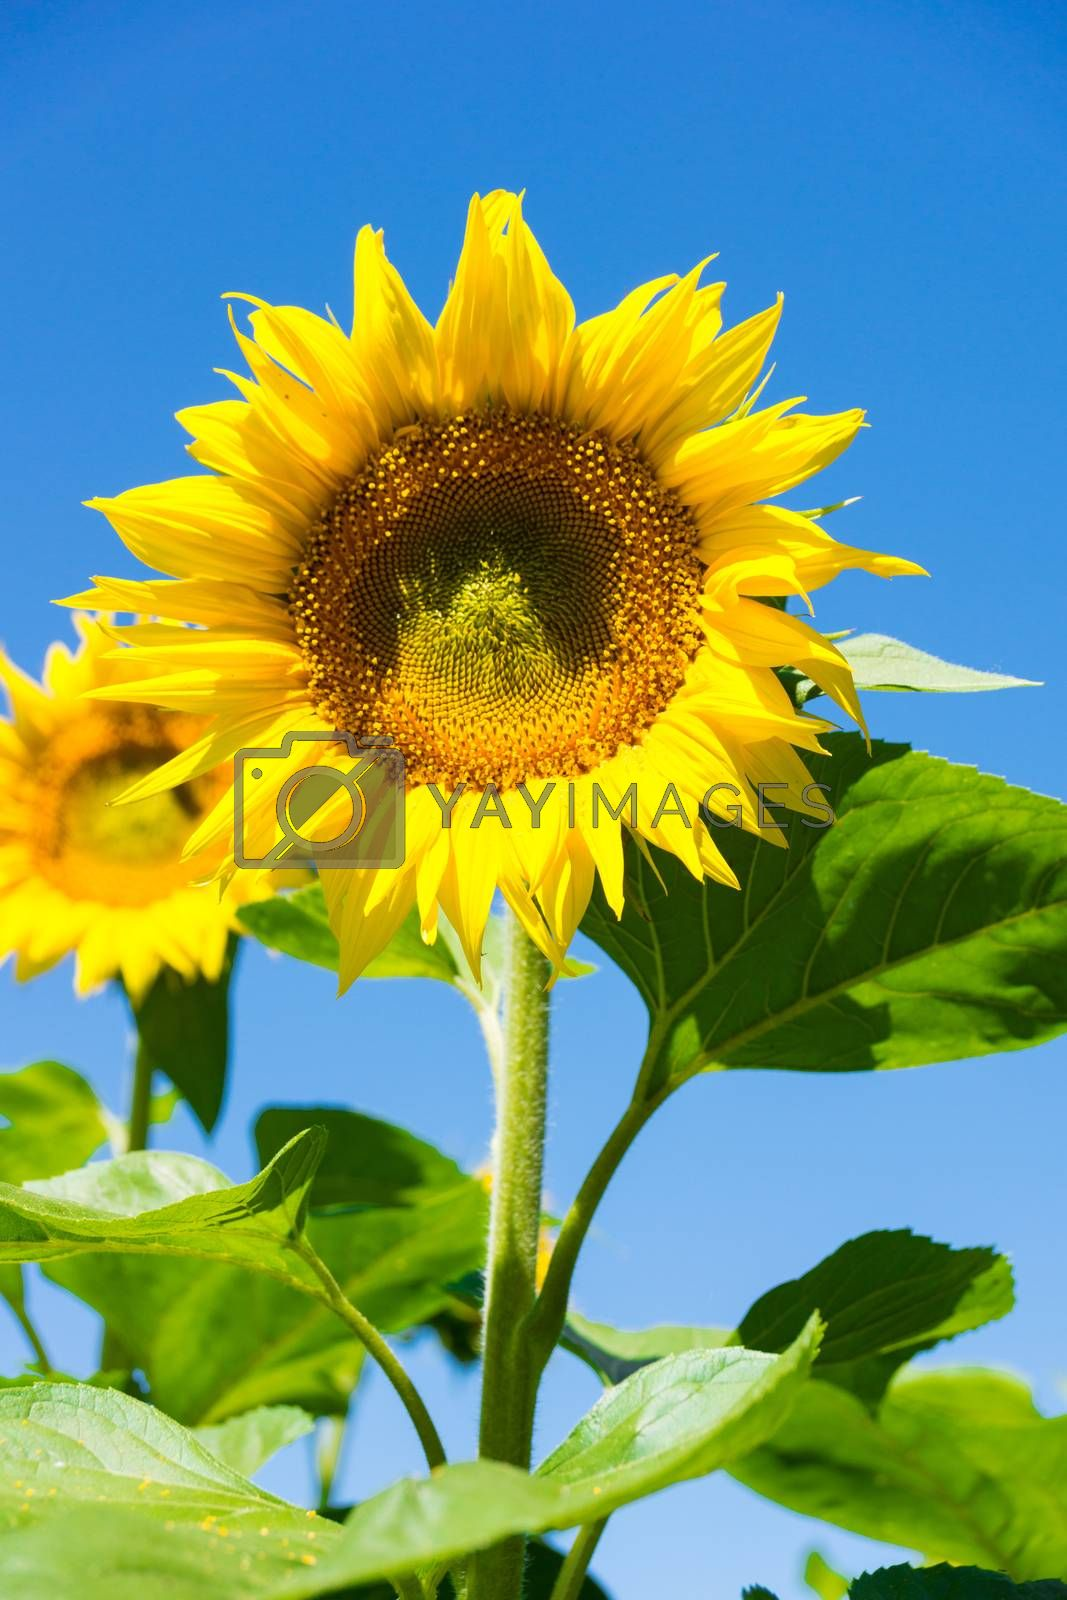 The photo depicts a sunflower against the blue sky.